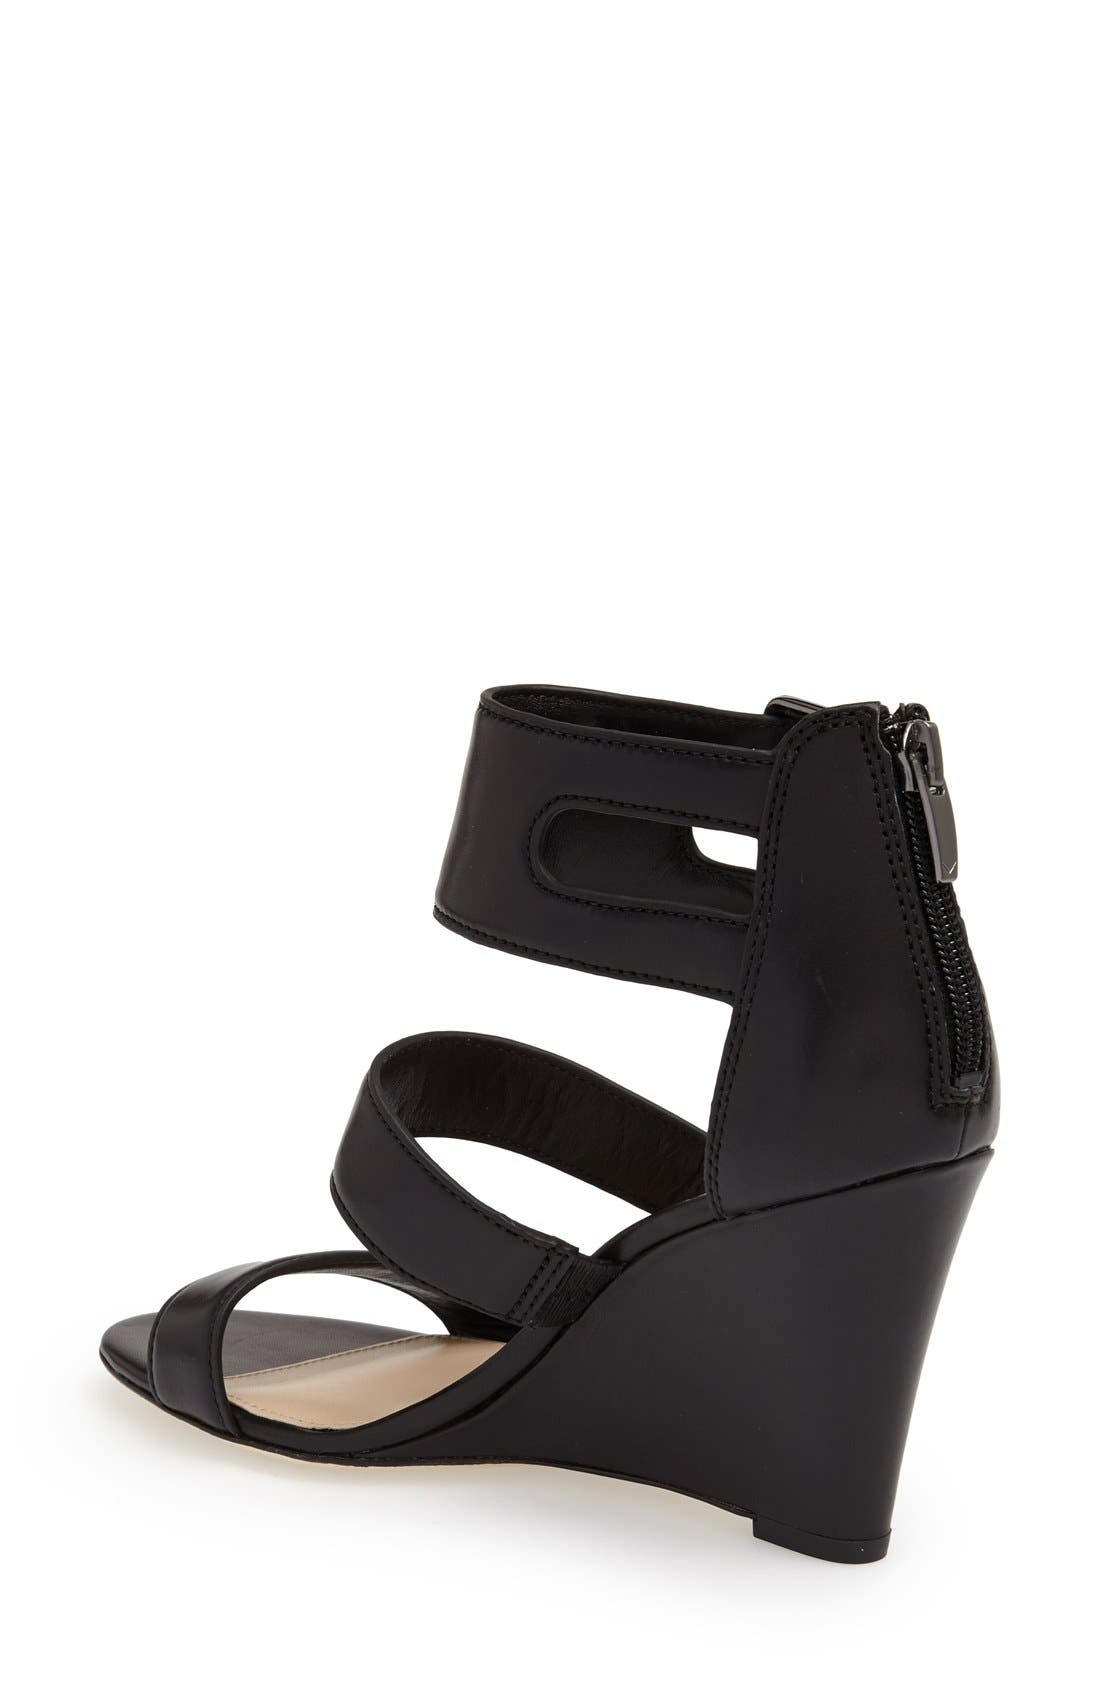 Alternate Image 2  - Via Spiga 'Fernanda' Wedge Leather Sandal (Women)